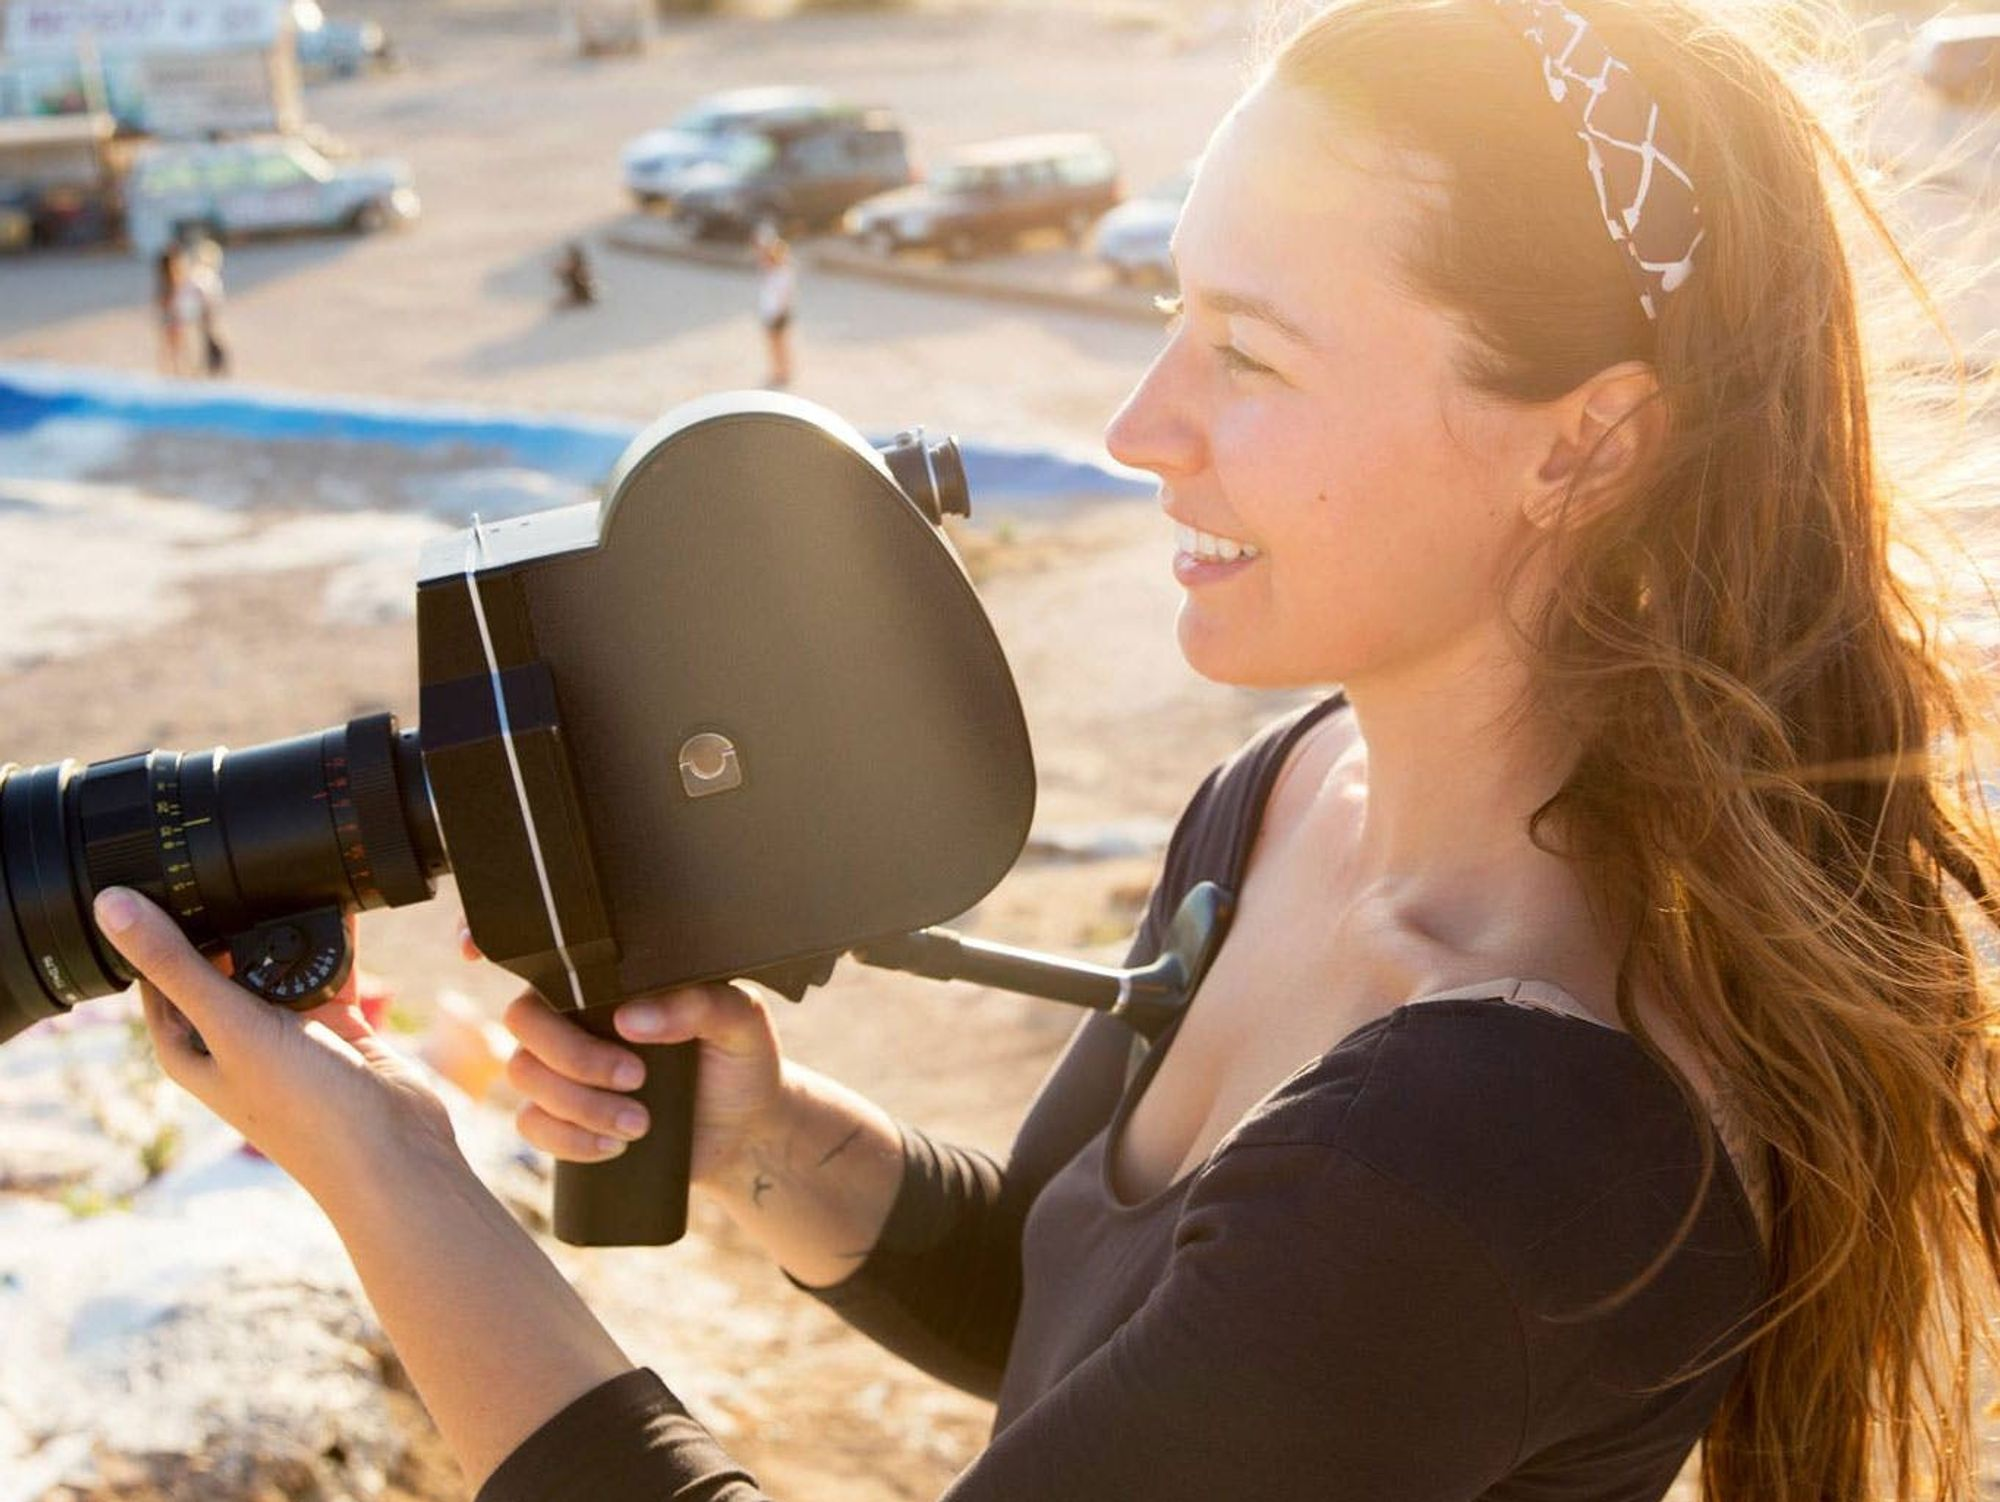 This Photographer Has Been to all 7 Continents and Is Using Her Work to Save the Environment